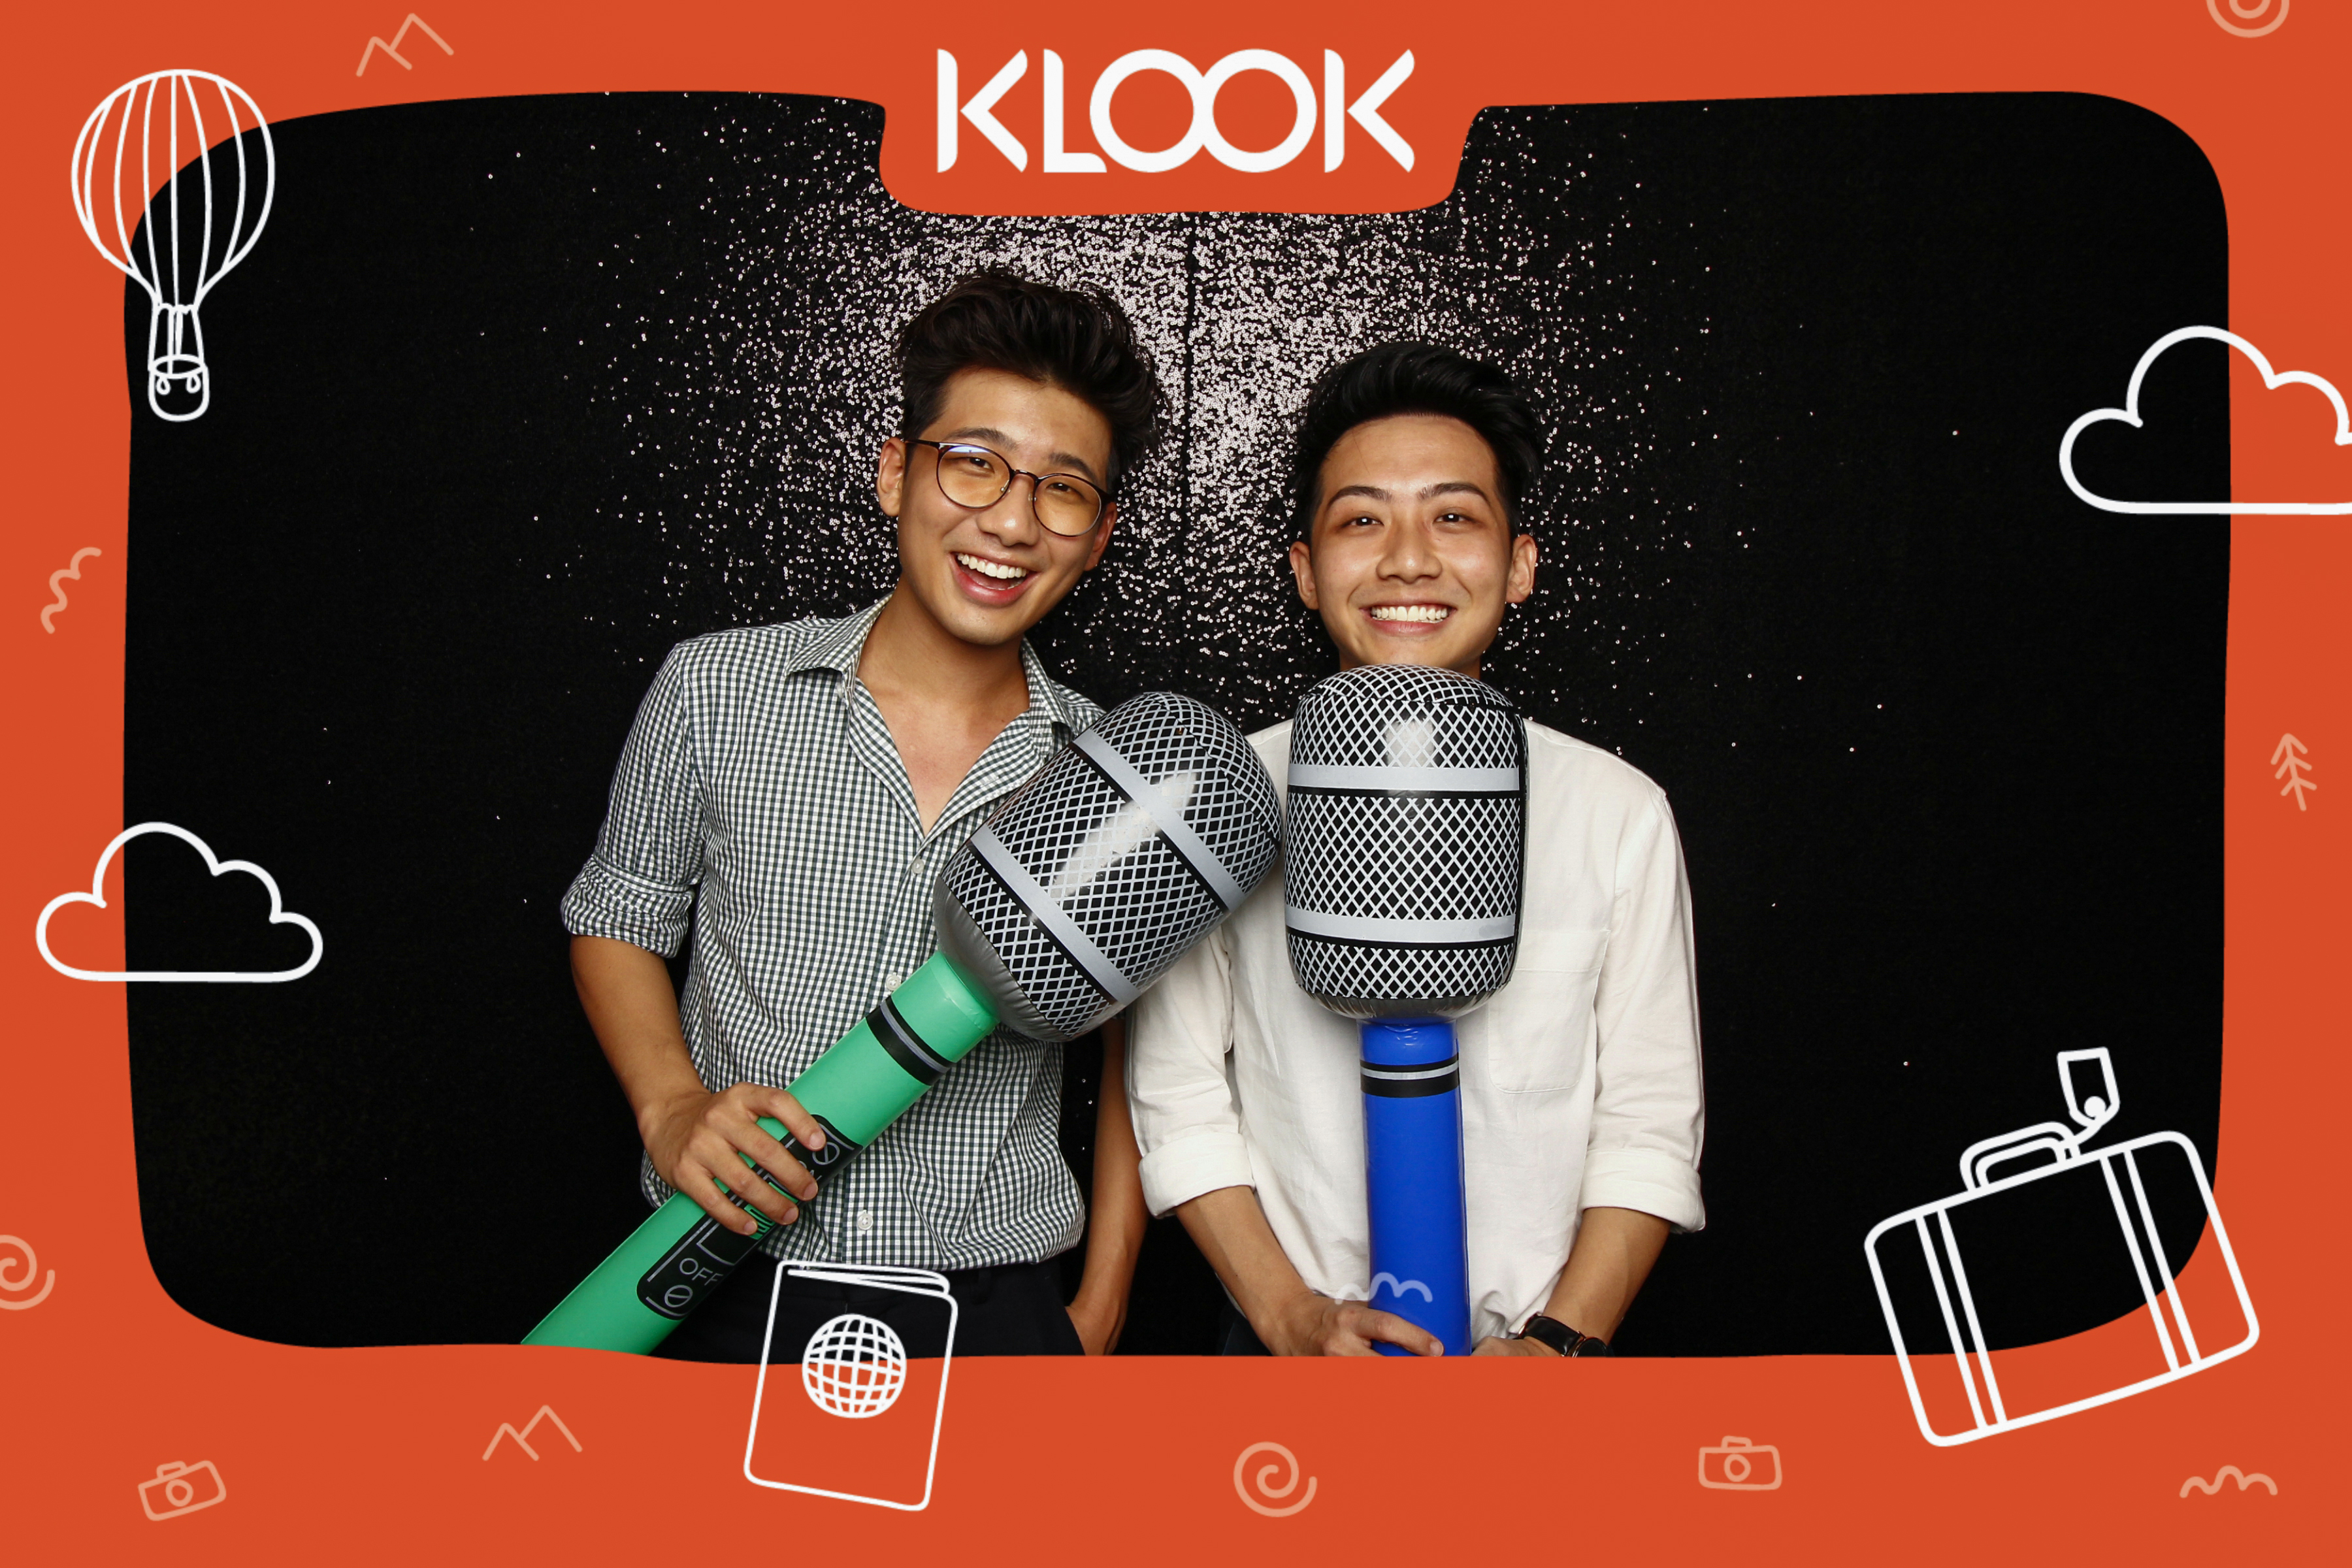 klook (31 of 120)